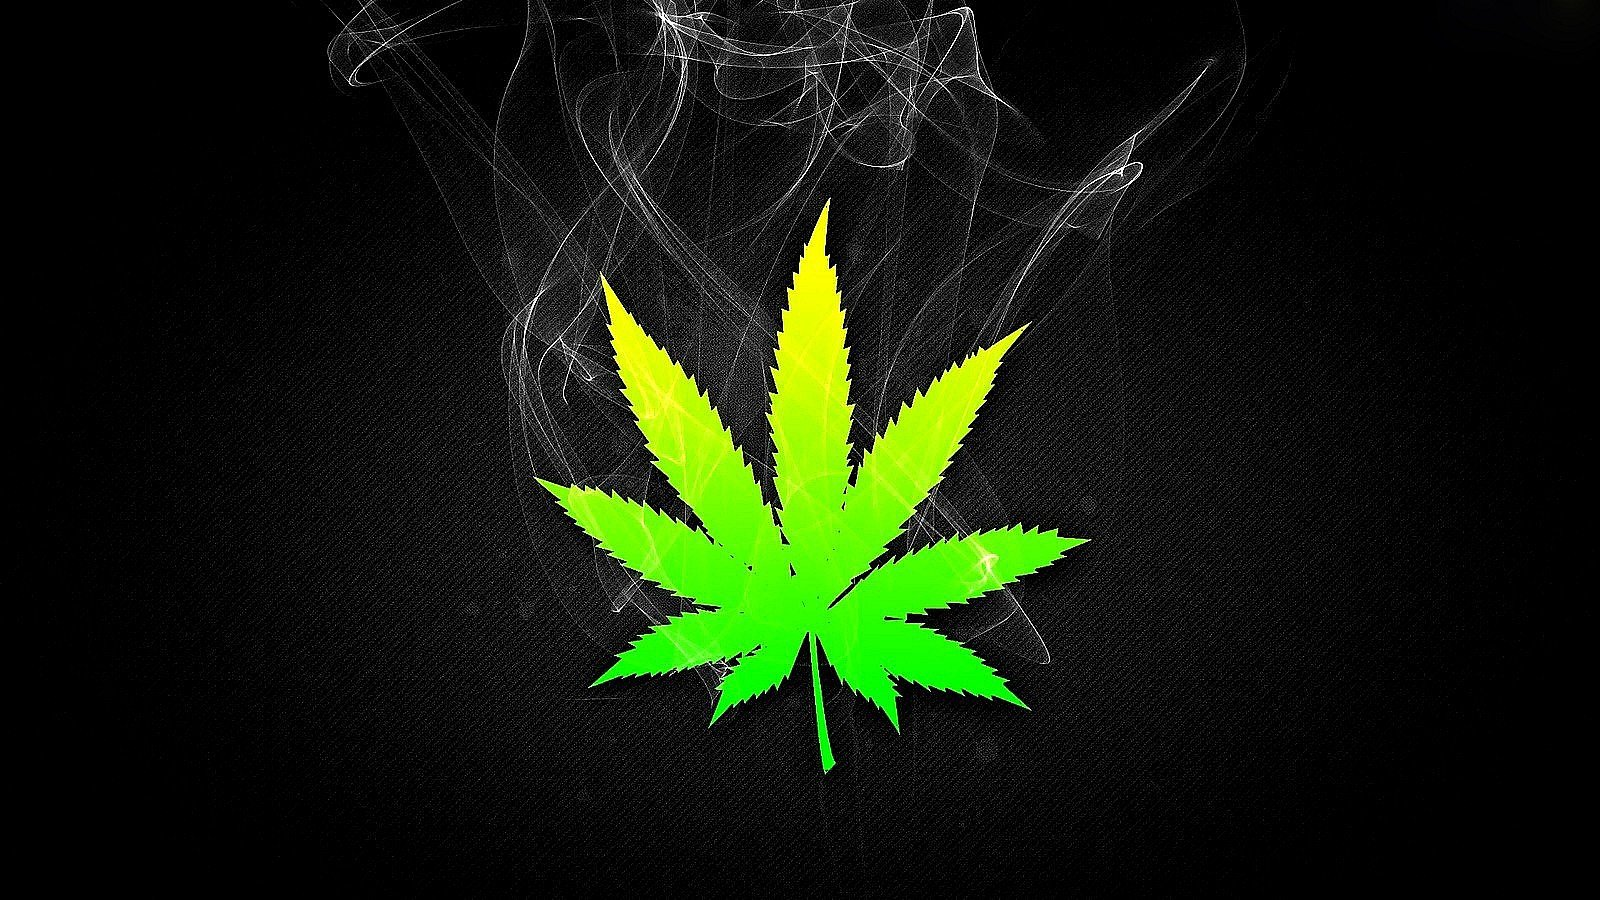 Download Weed Smoking Wallpaper Gallery